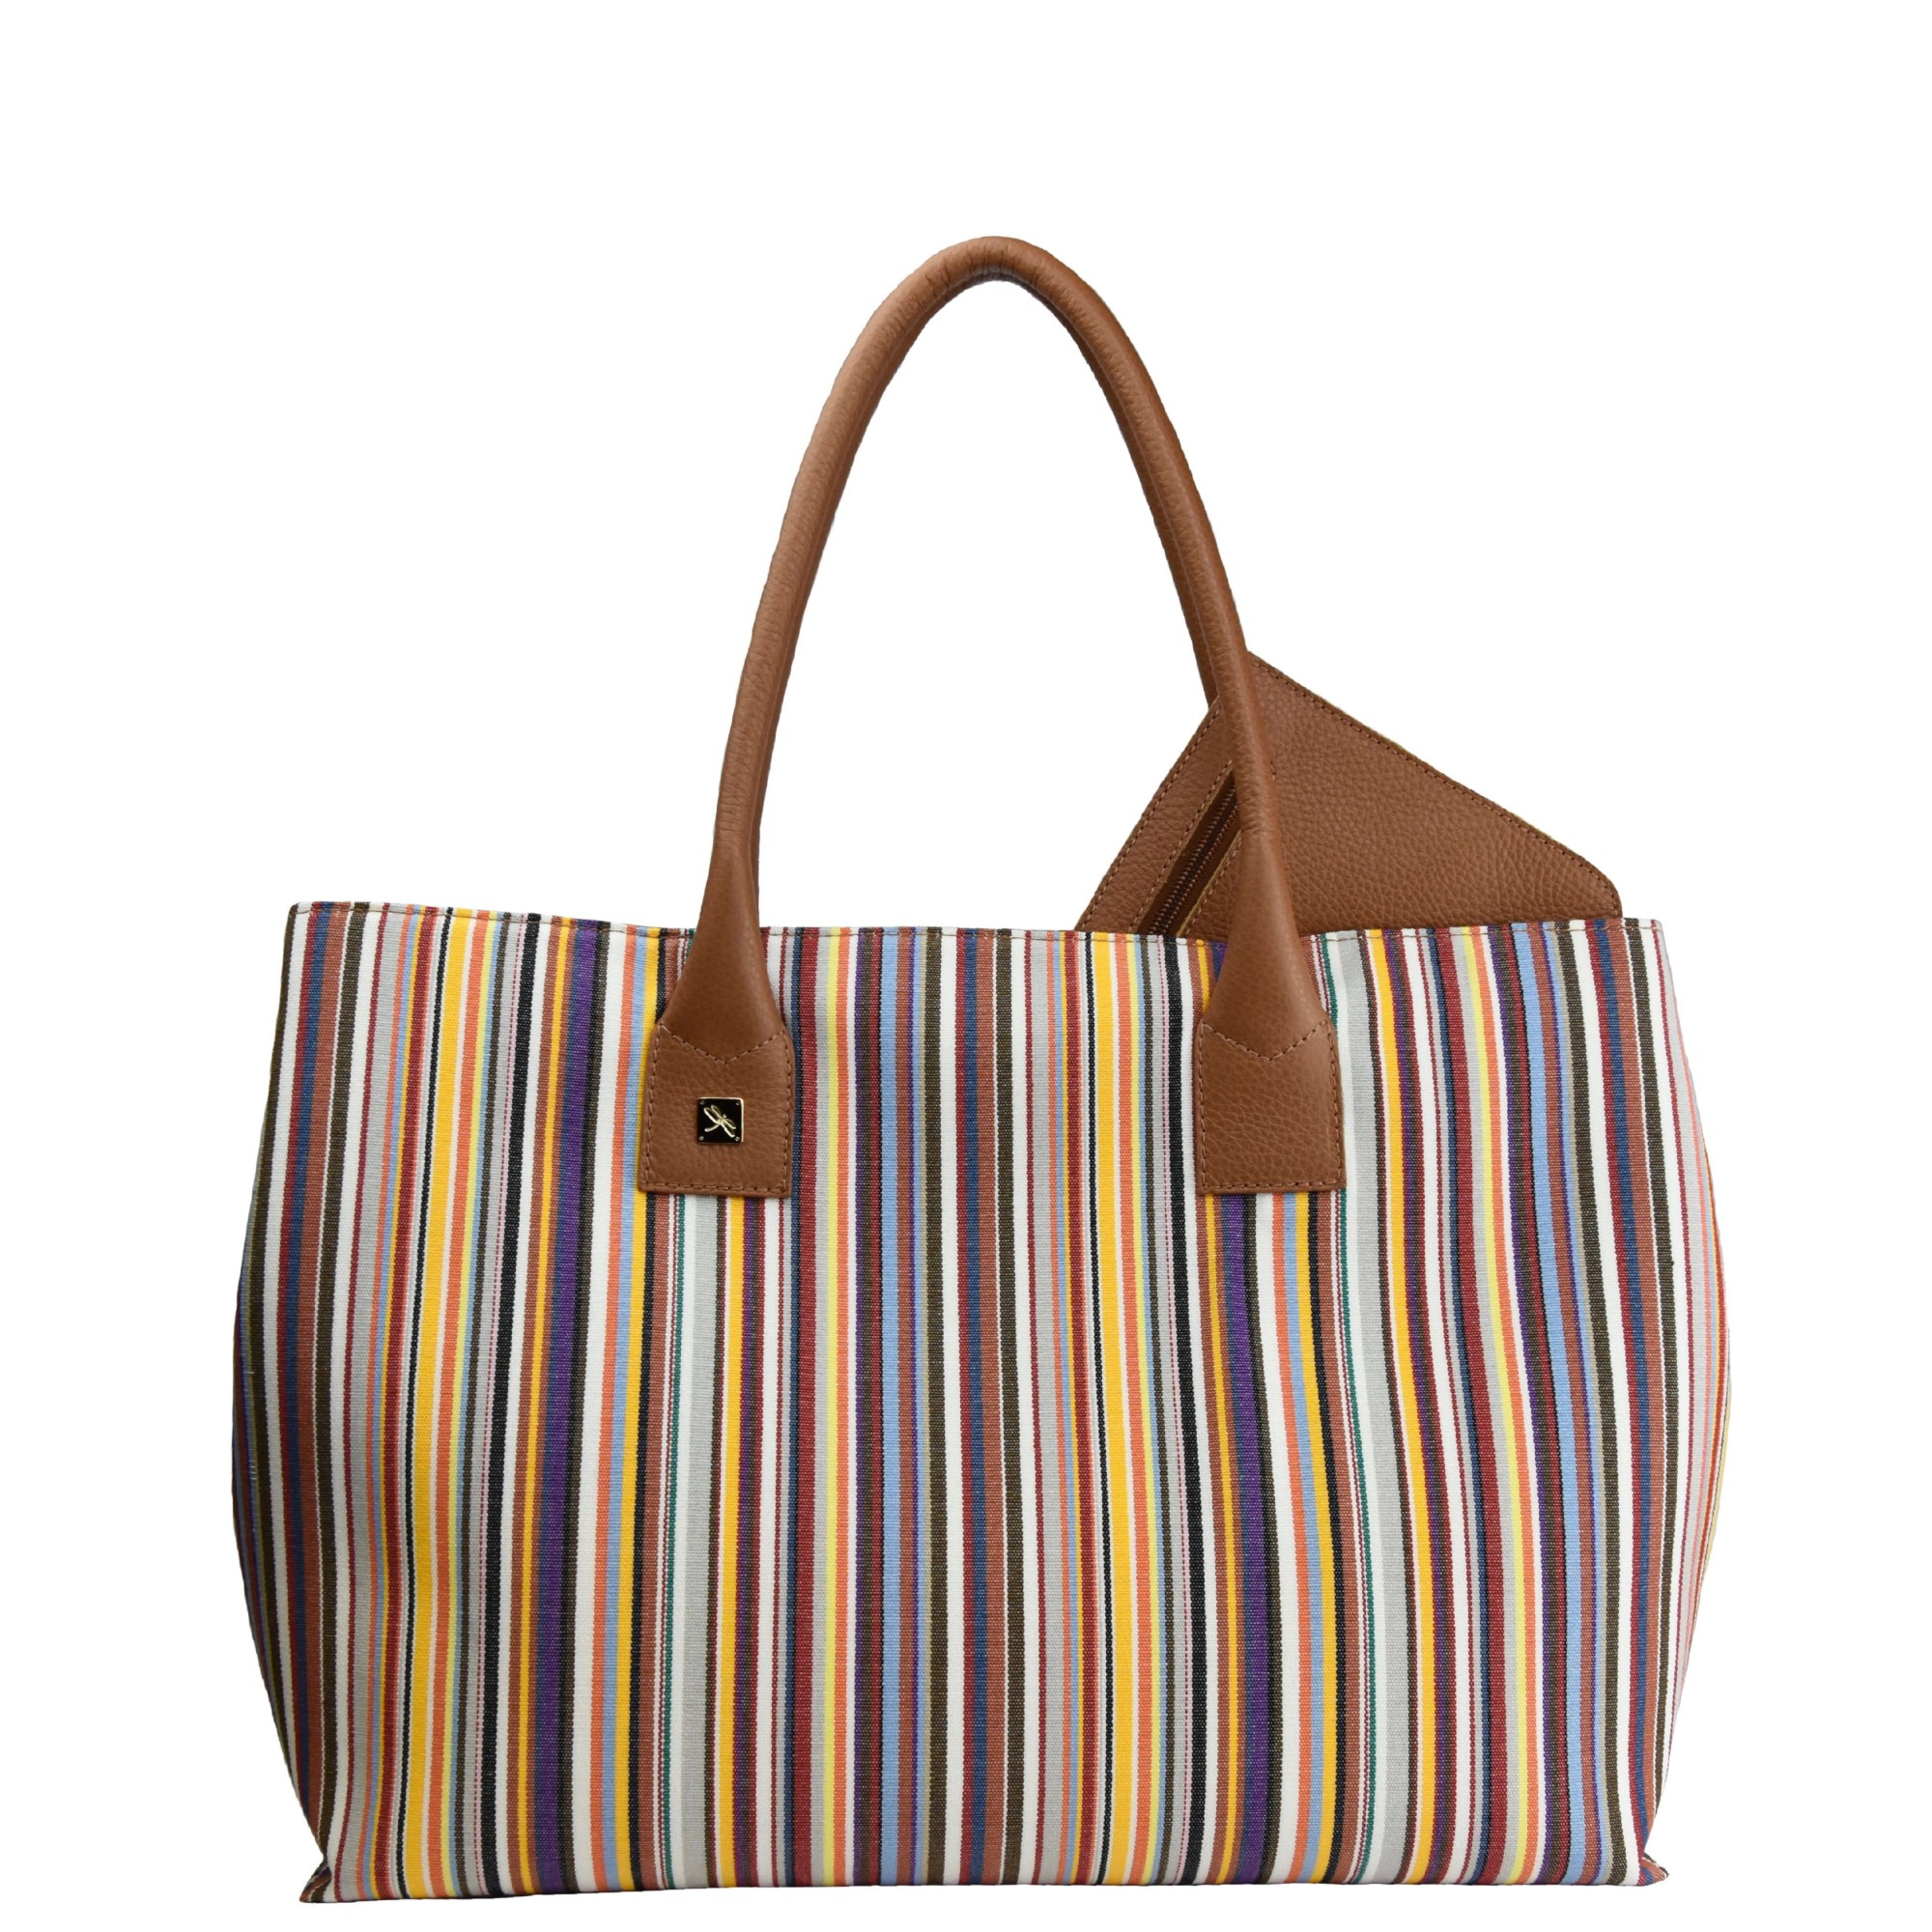 Natalia L Canvas Tote Bag